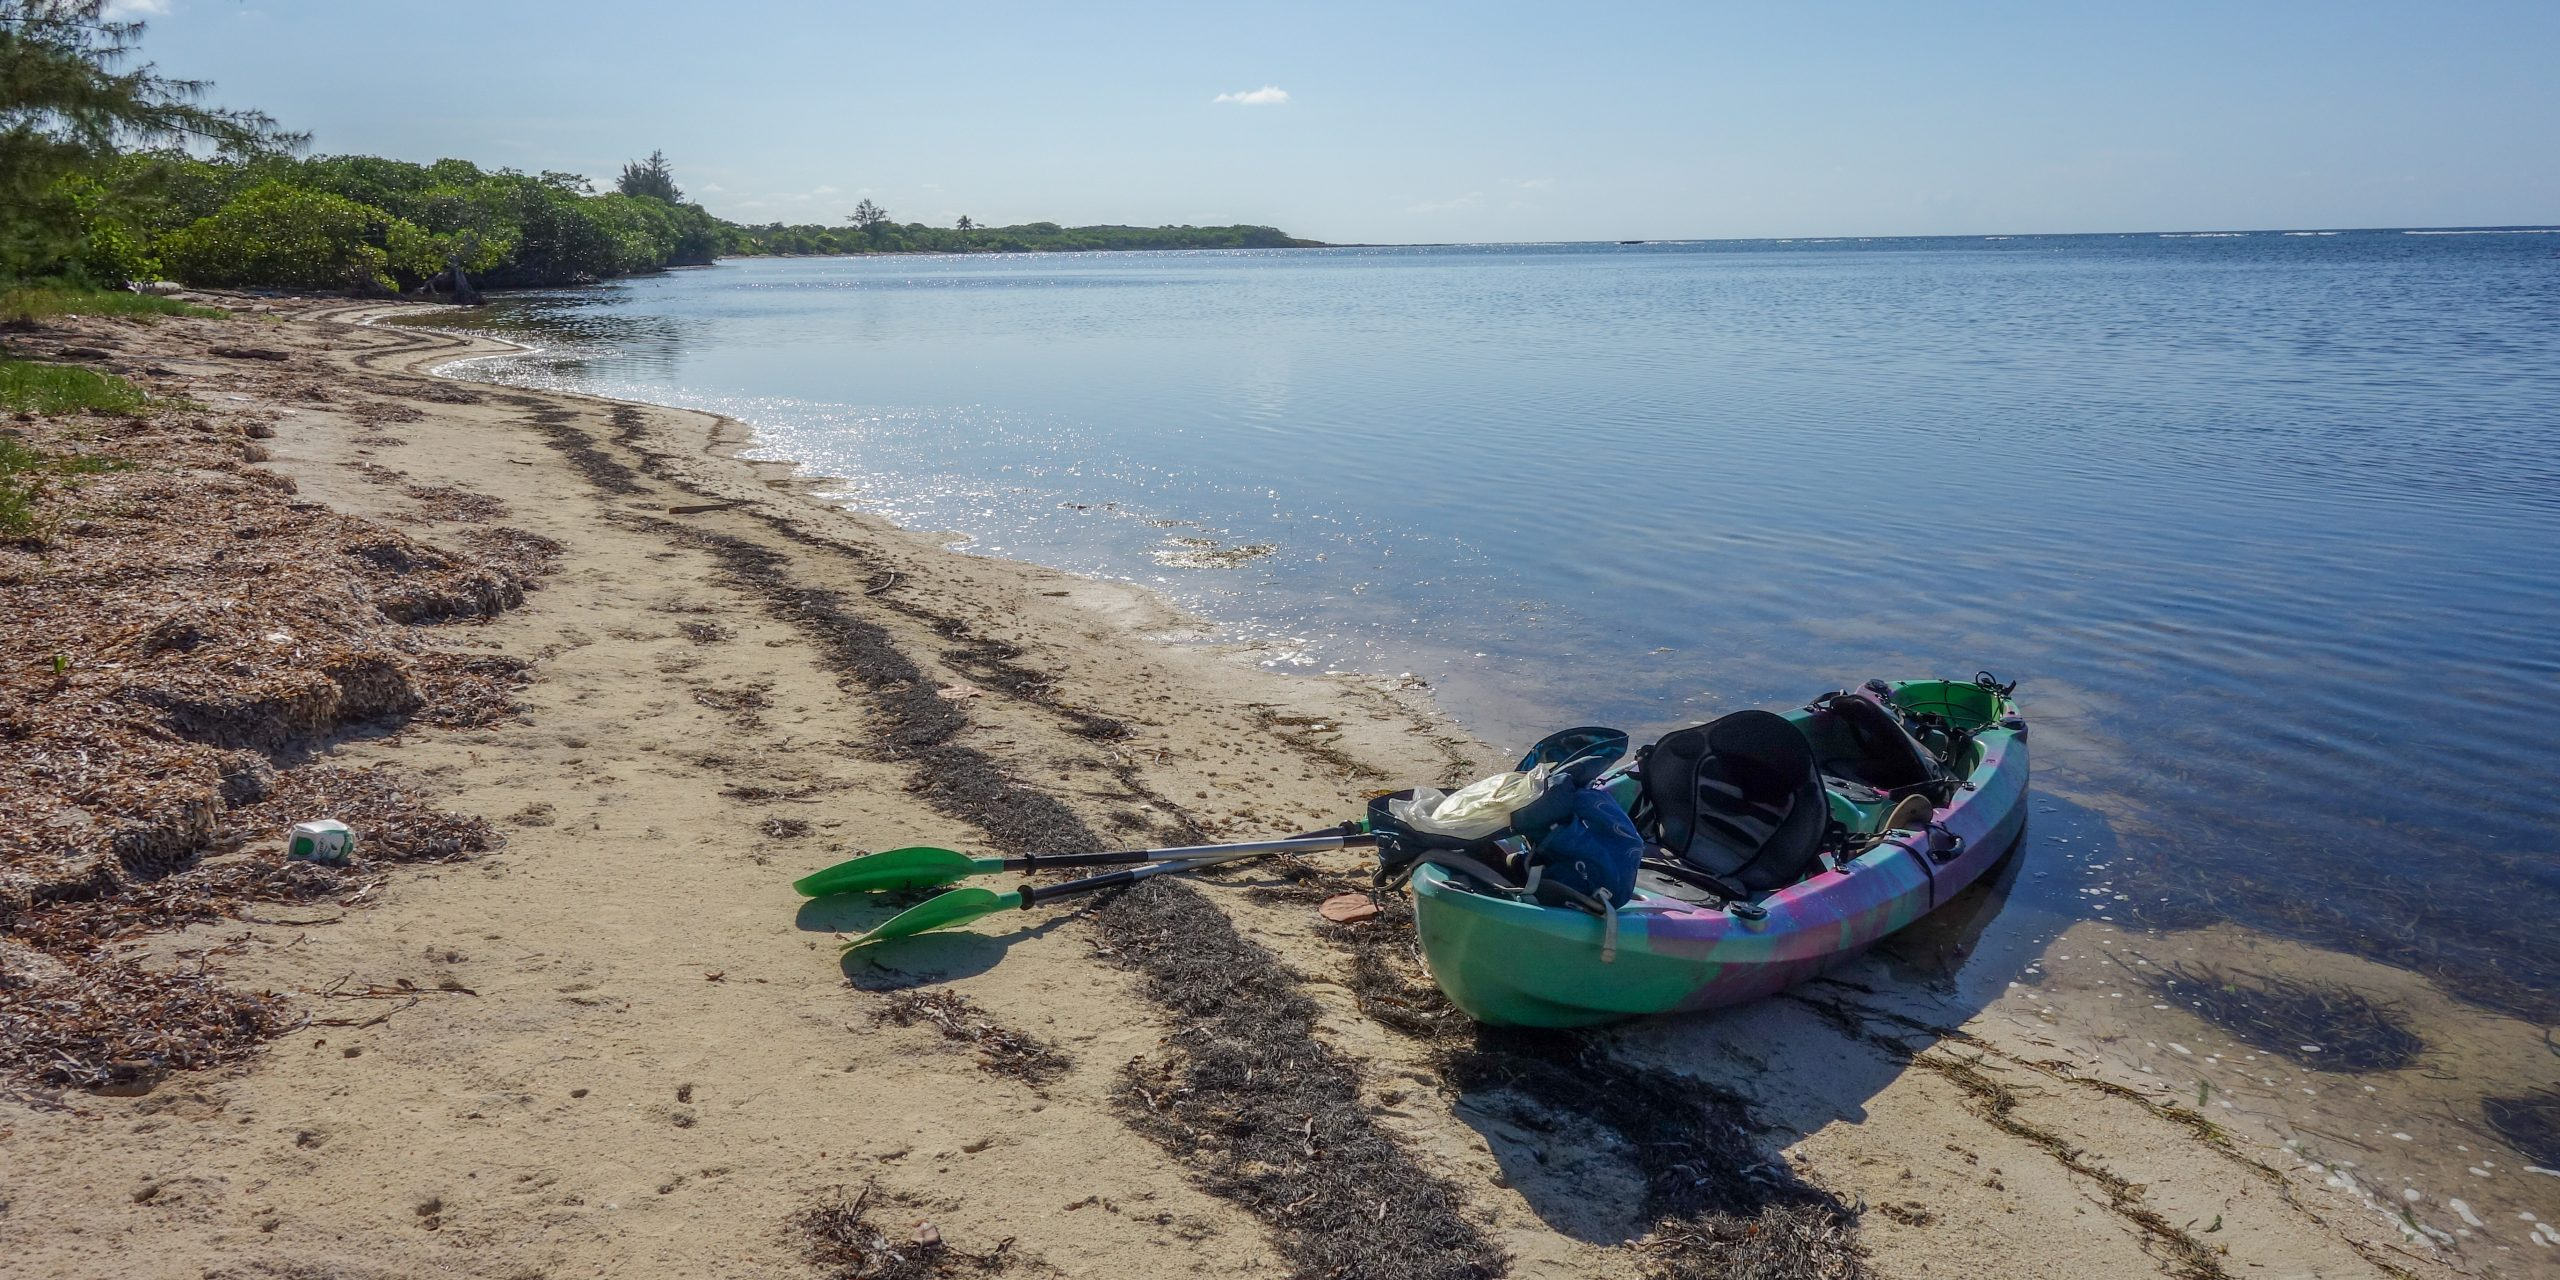 Kayak at the beach in Rock Harbor, Honduras